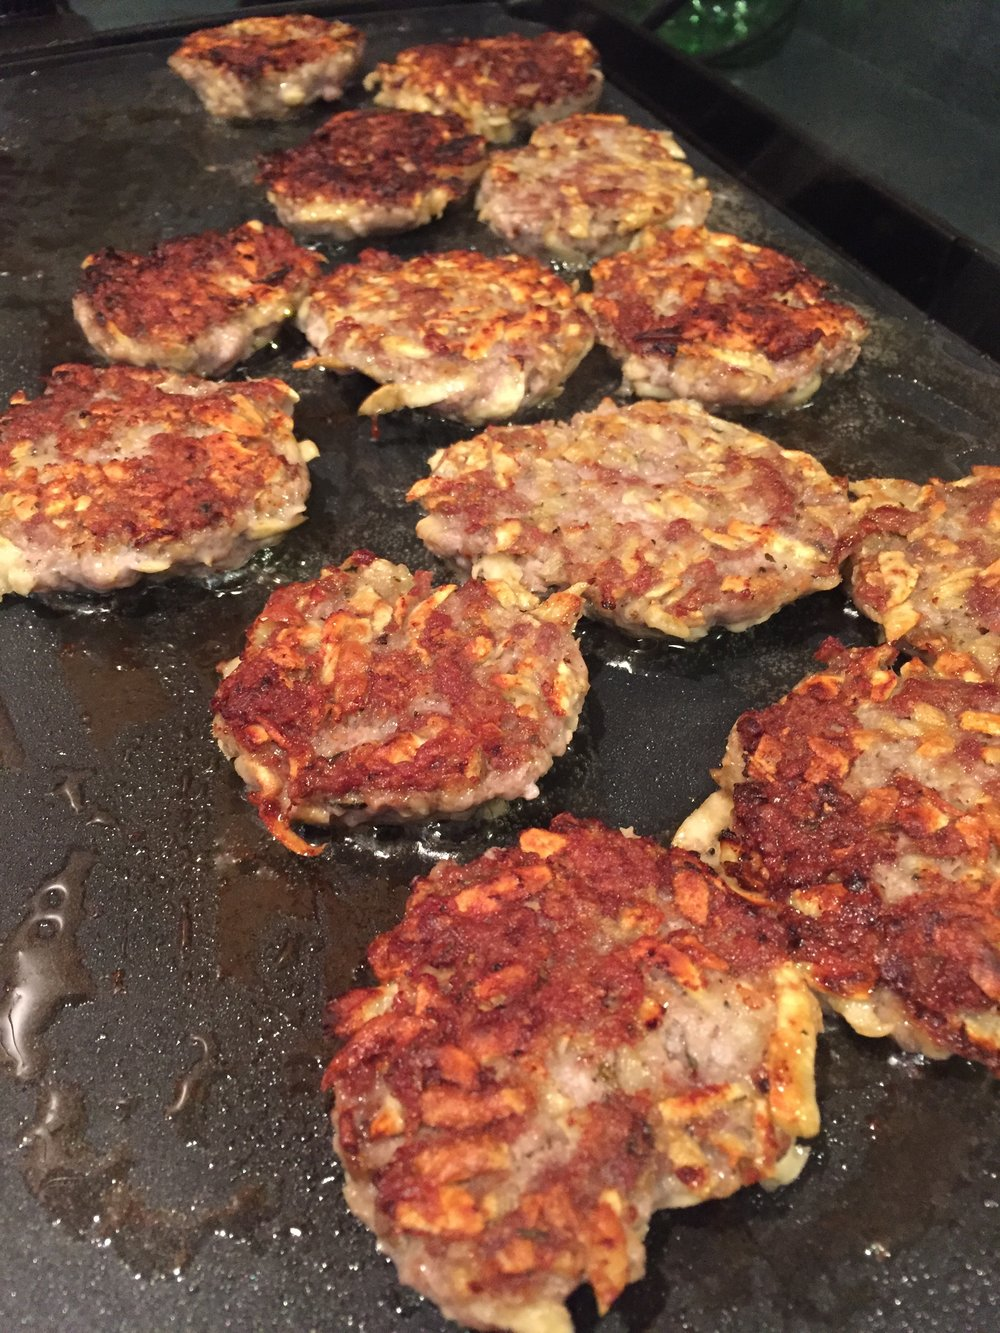 Pork Patties with Sweet Potatoes for the Autoimmune Protocol